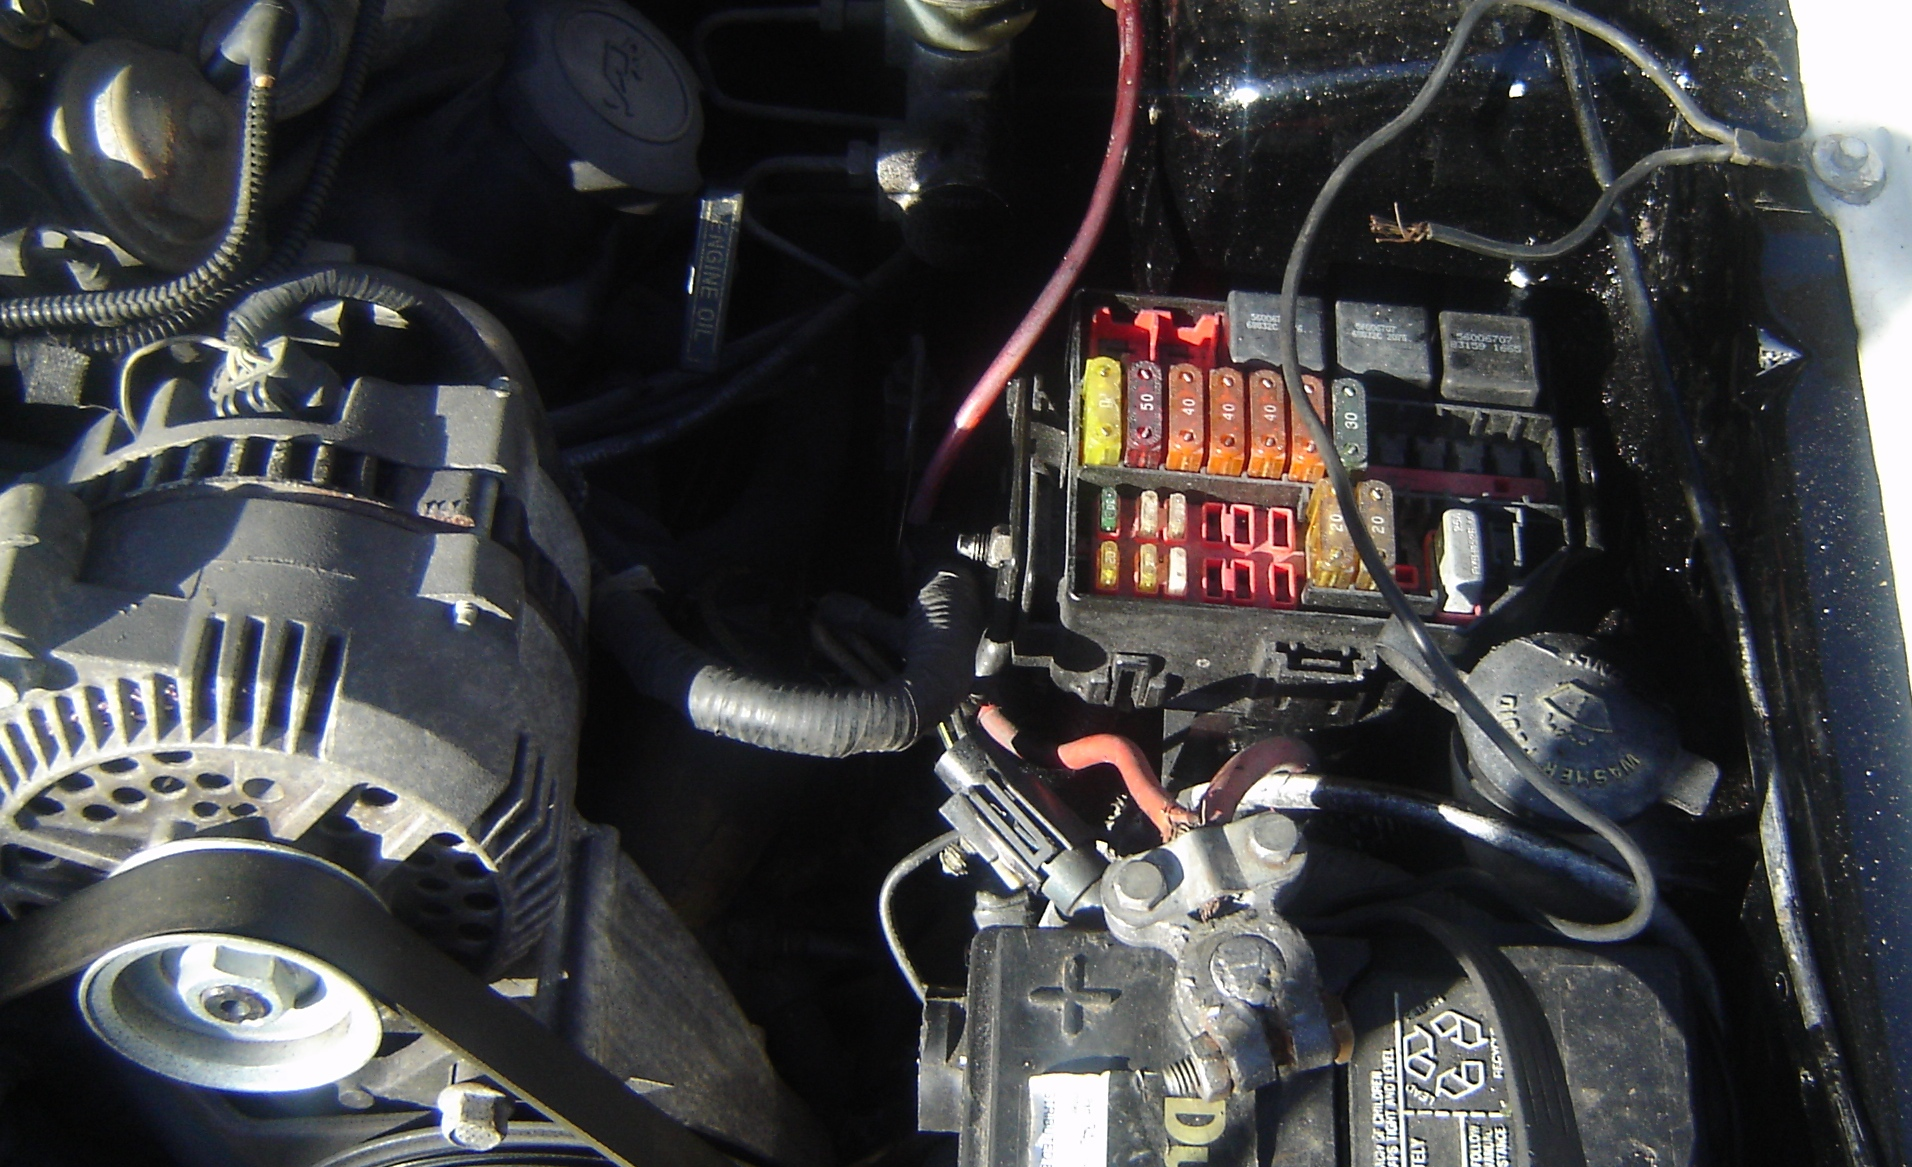 94 Mustang 3 8 Fuse Box - Wiring Diagram Networks